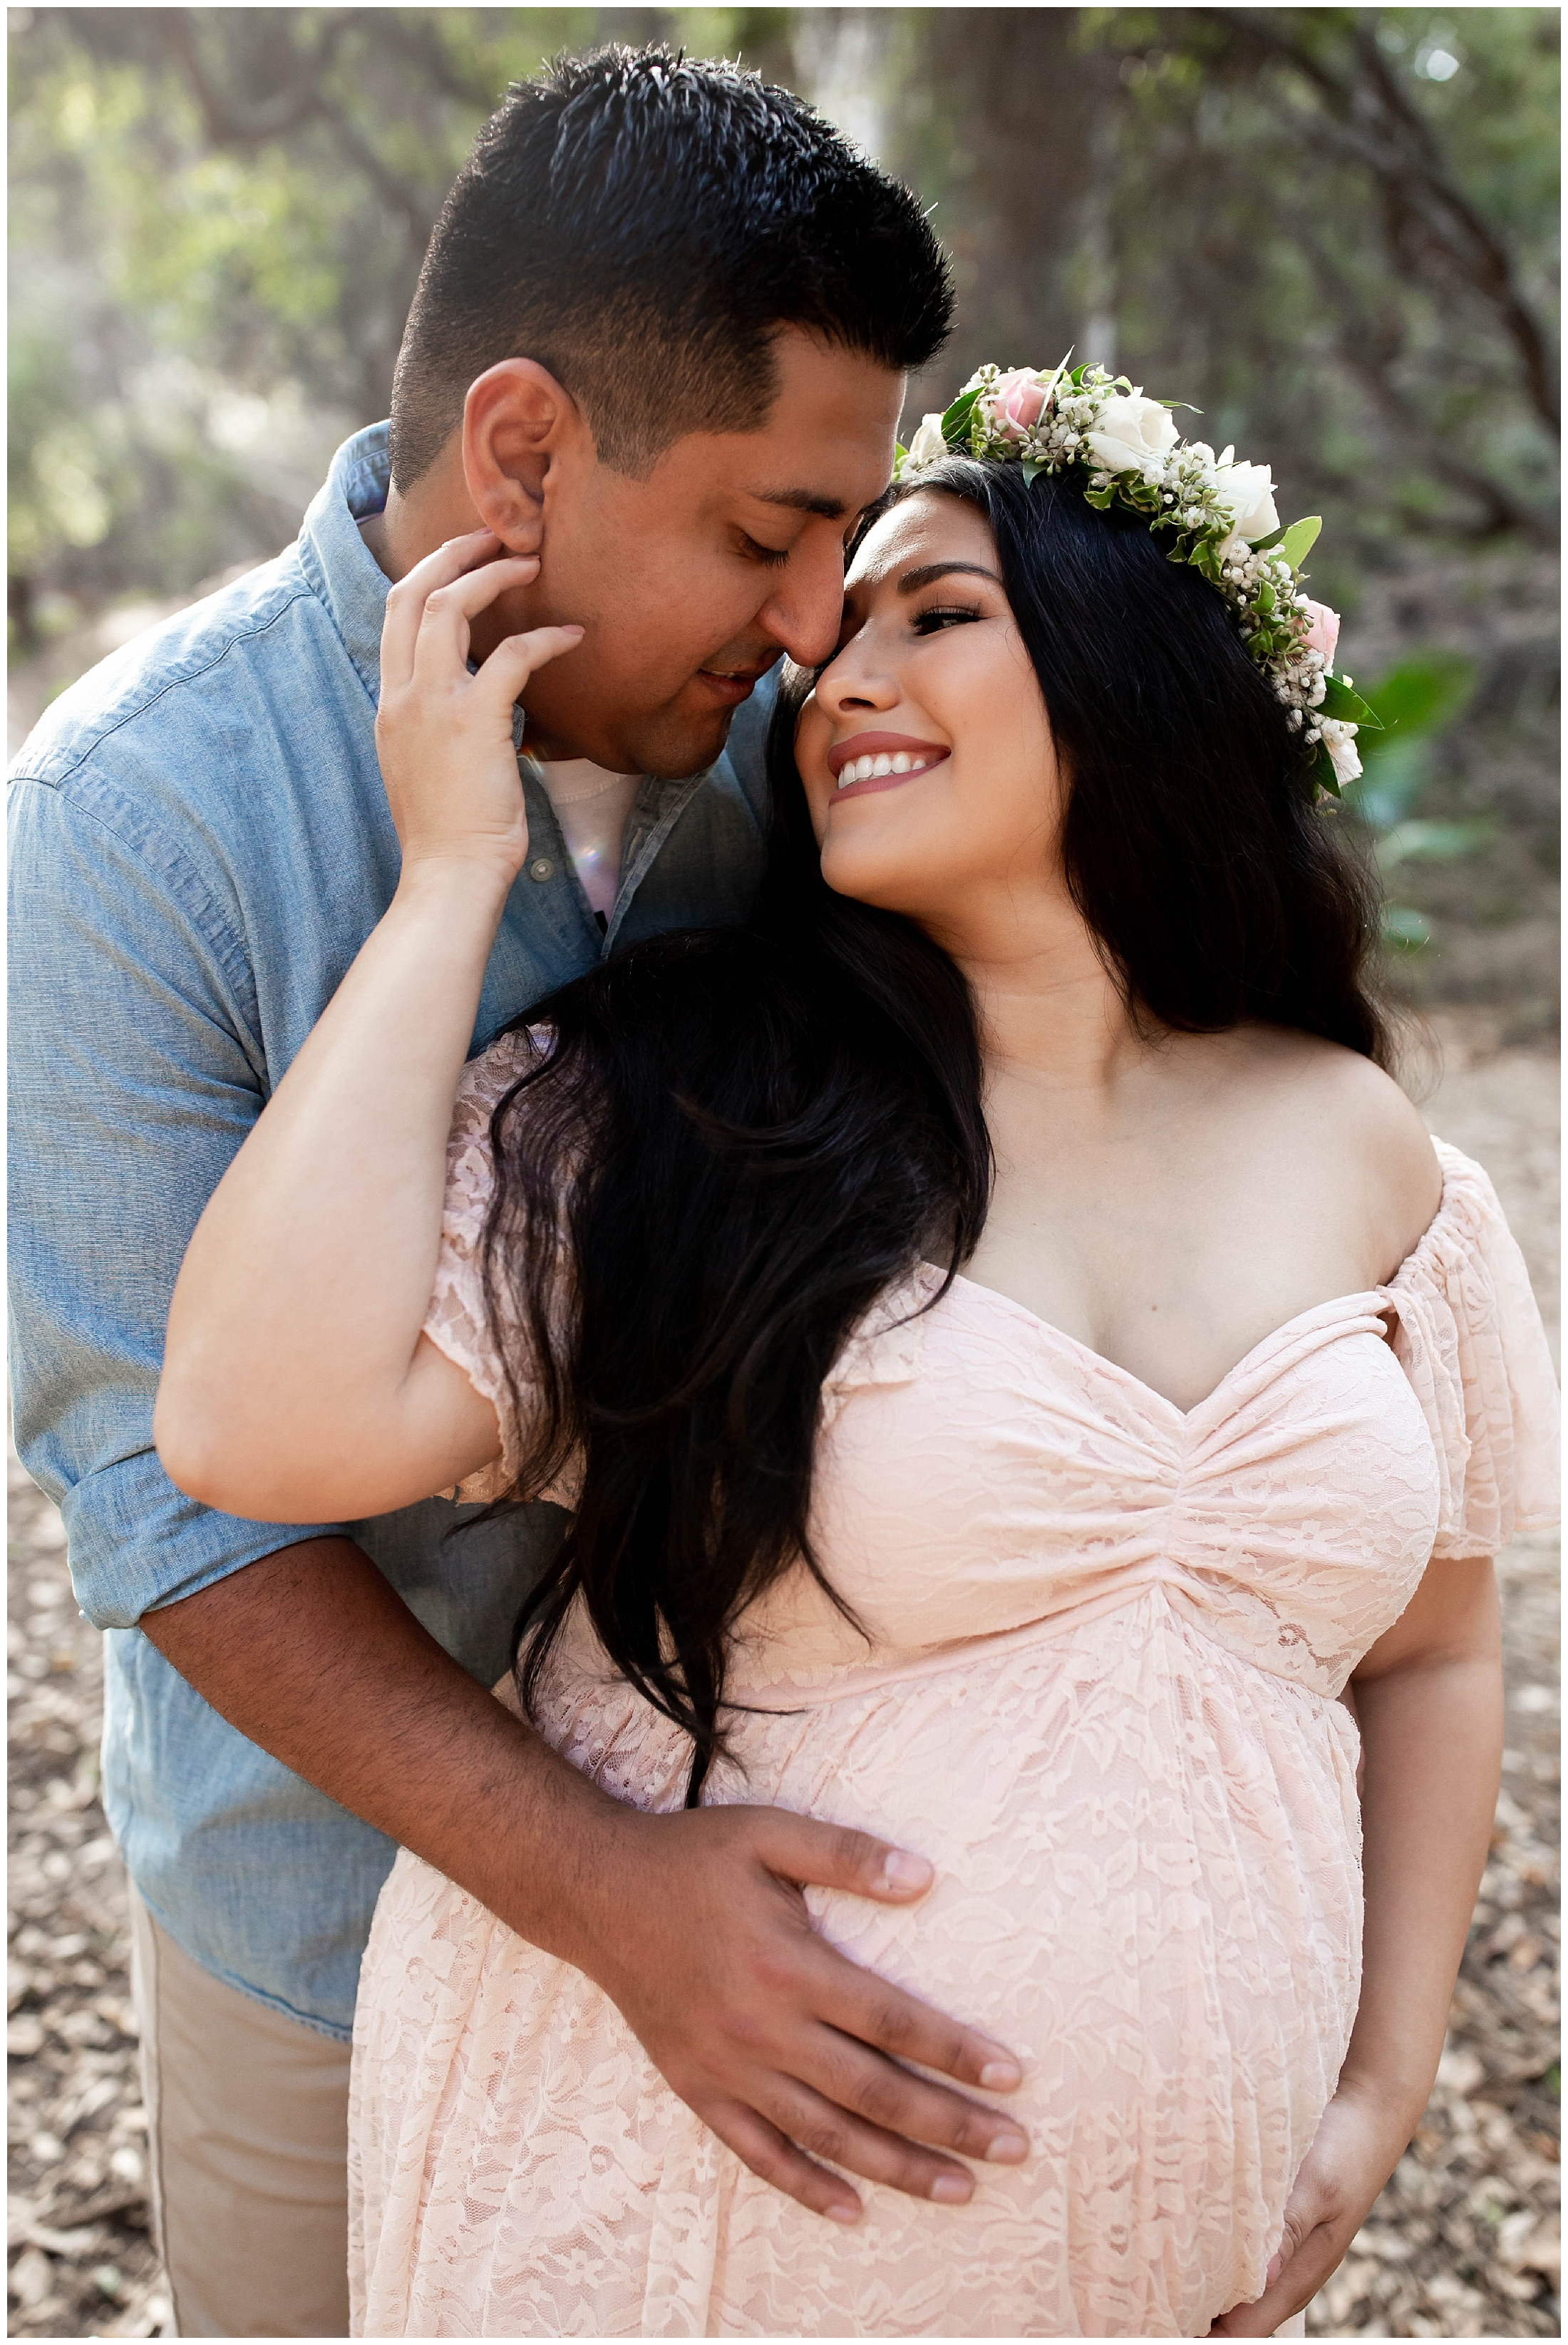 Fairytale Maternity by Lomonico Photography